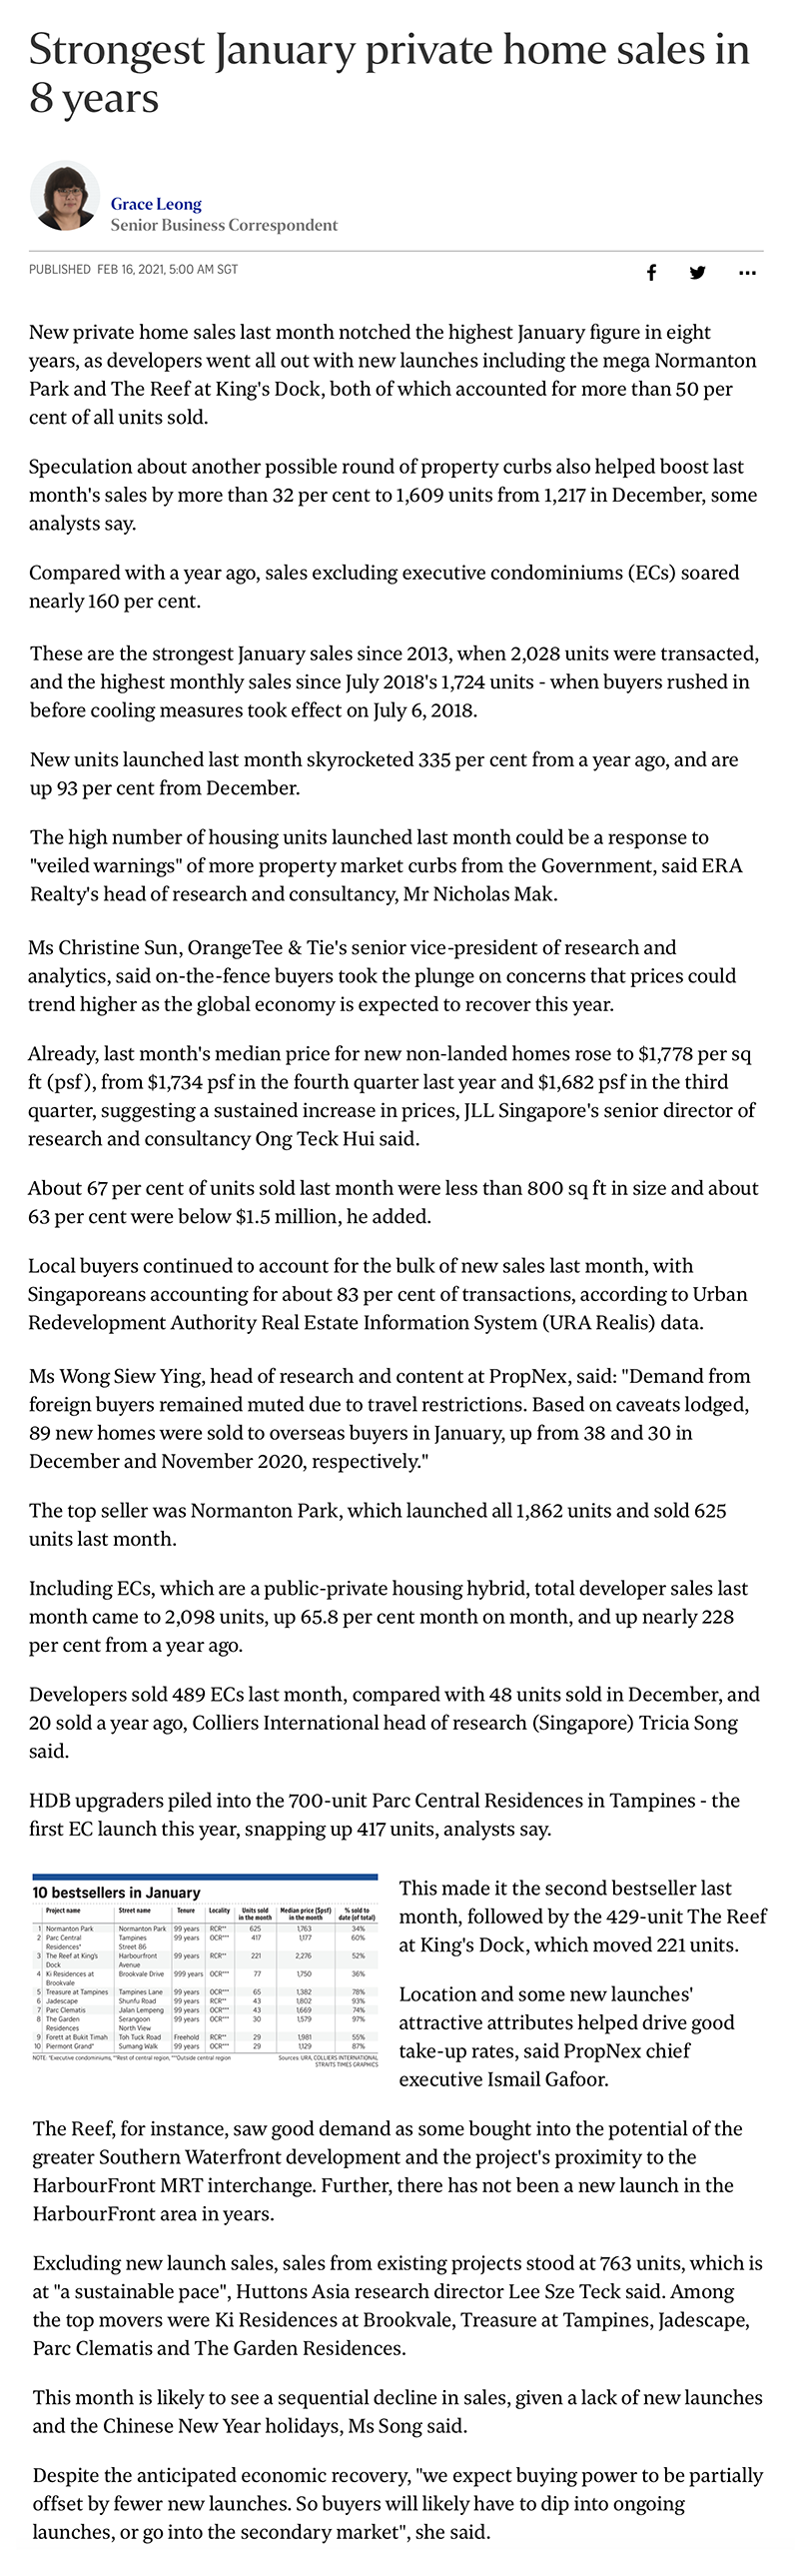 The Woodleigh Residences - Strongest January private home sales in 8 years